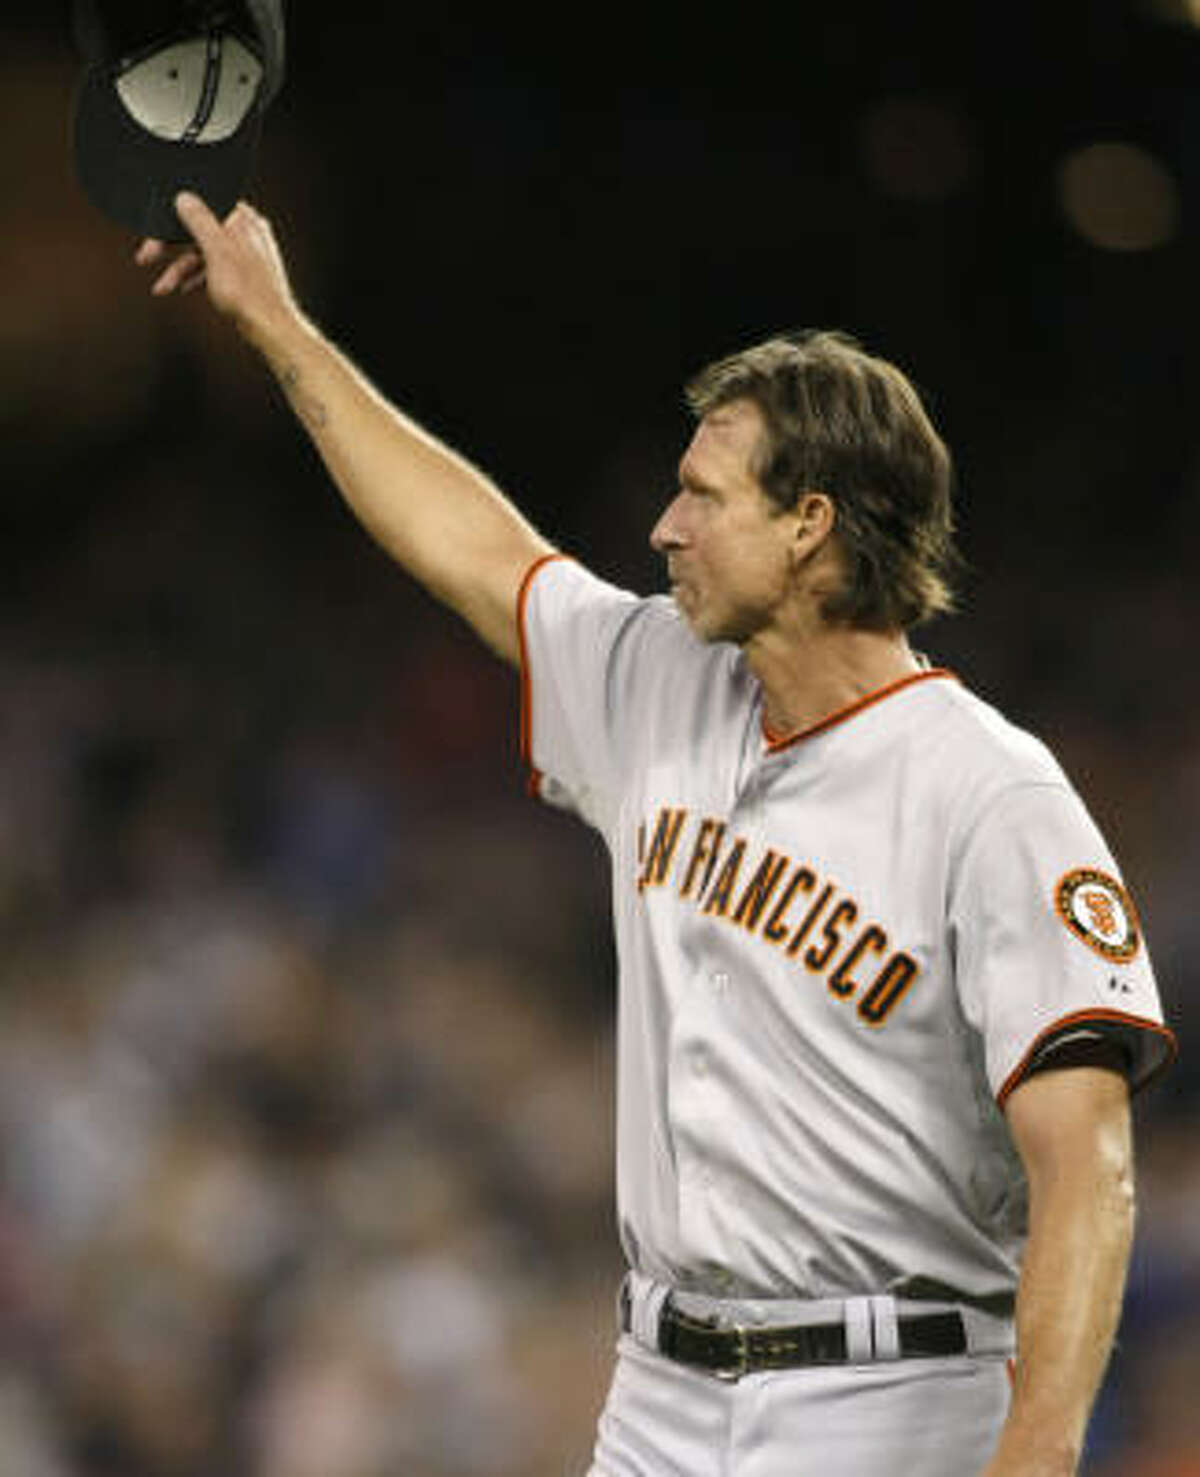 San Francisco Giants pitcher Randy Johnson tips his hat to the crowd as he leaves the baseball game with a 1-1 tie against the Seattle Mariners during the sixth inning at Safeco Field in Seattle, where he played from 1989-98.